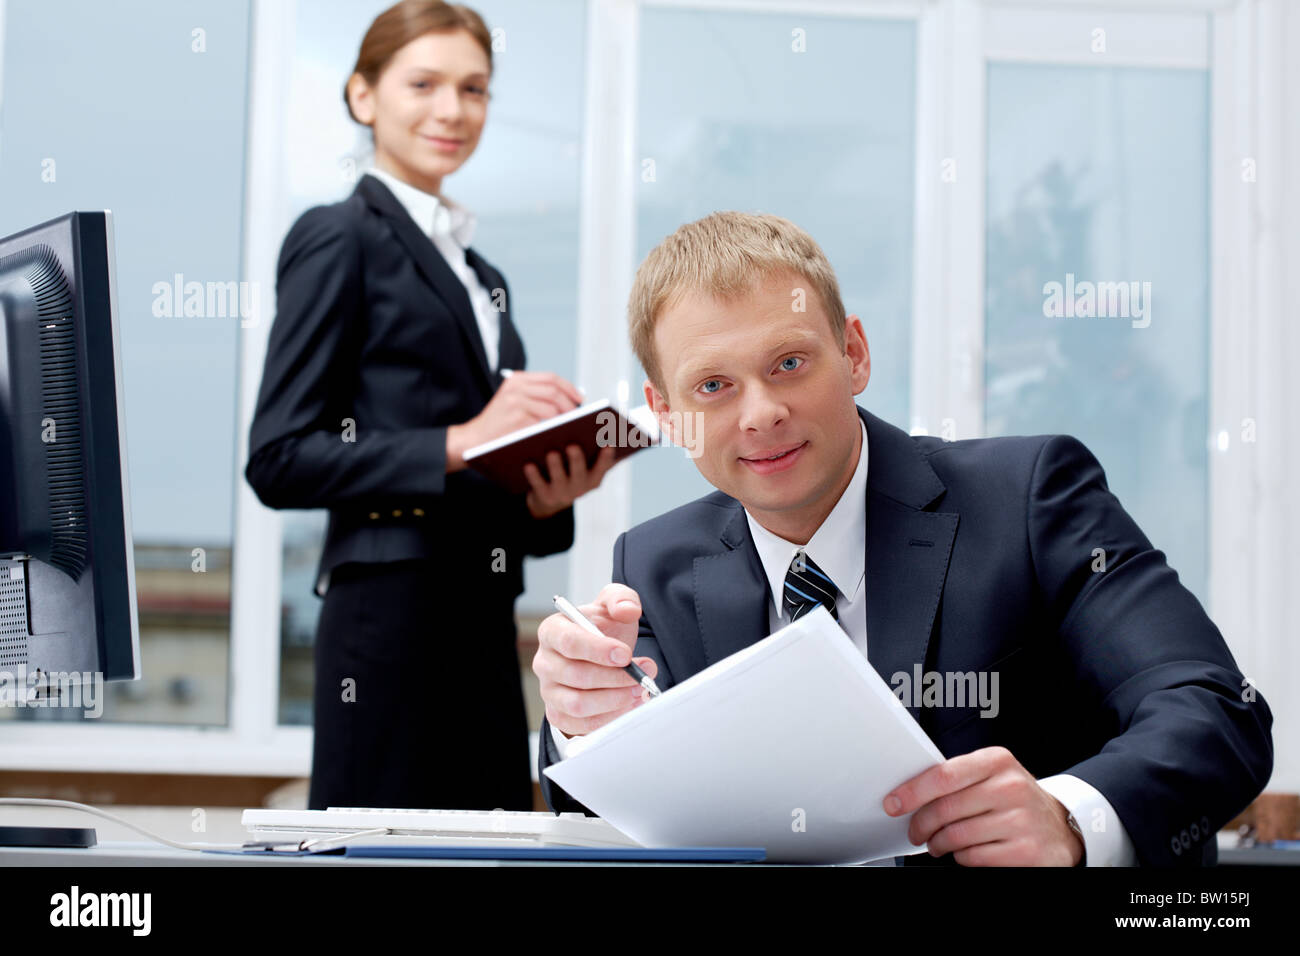 Portrait of confident boss holding papers at workplace with executive secretary standing behind - Stock Image